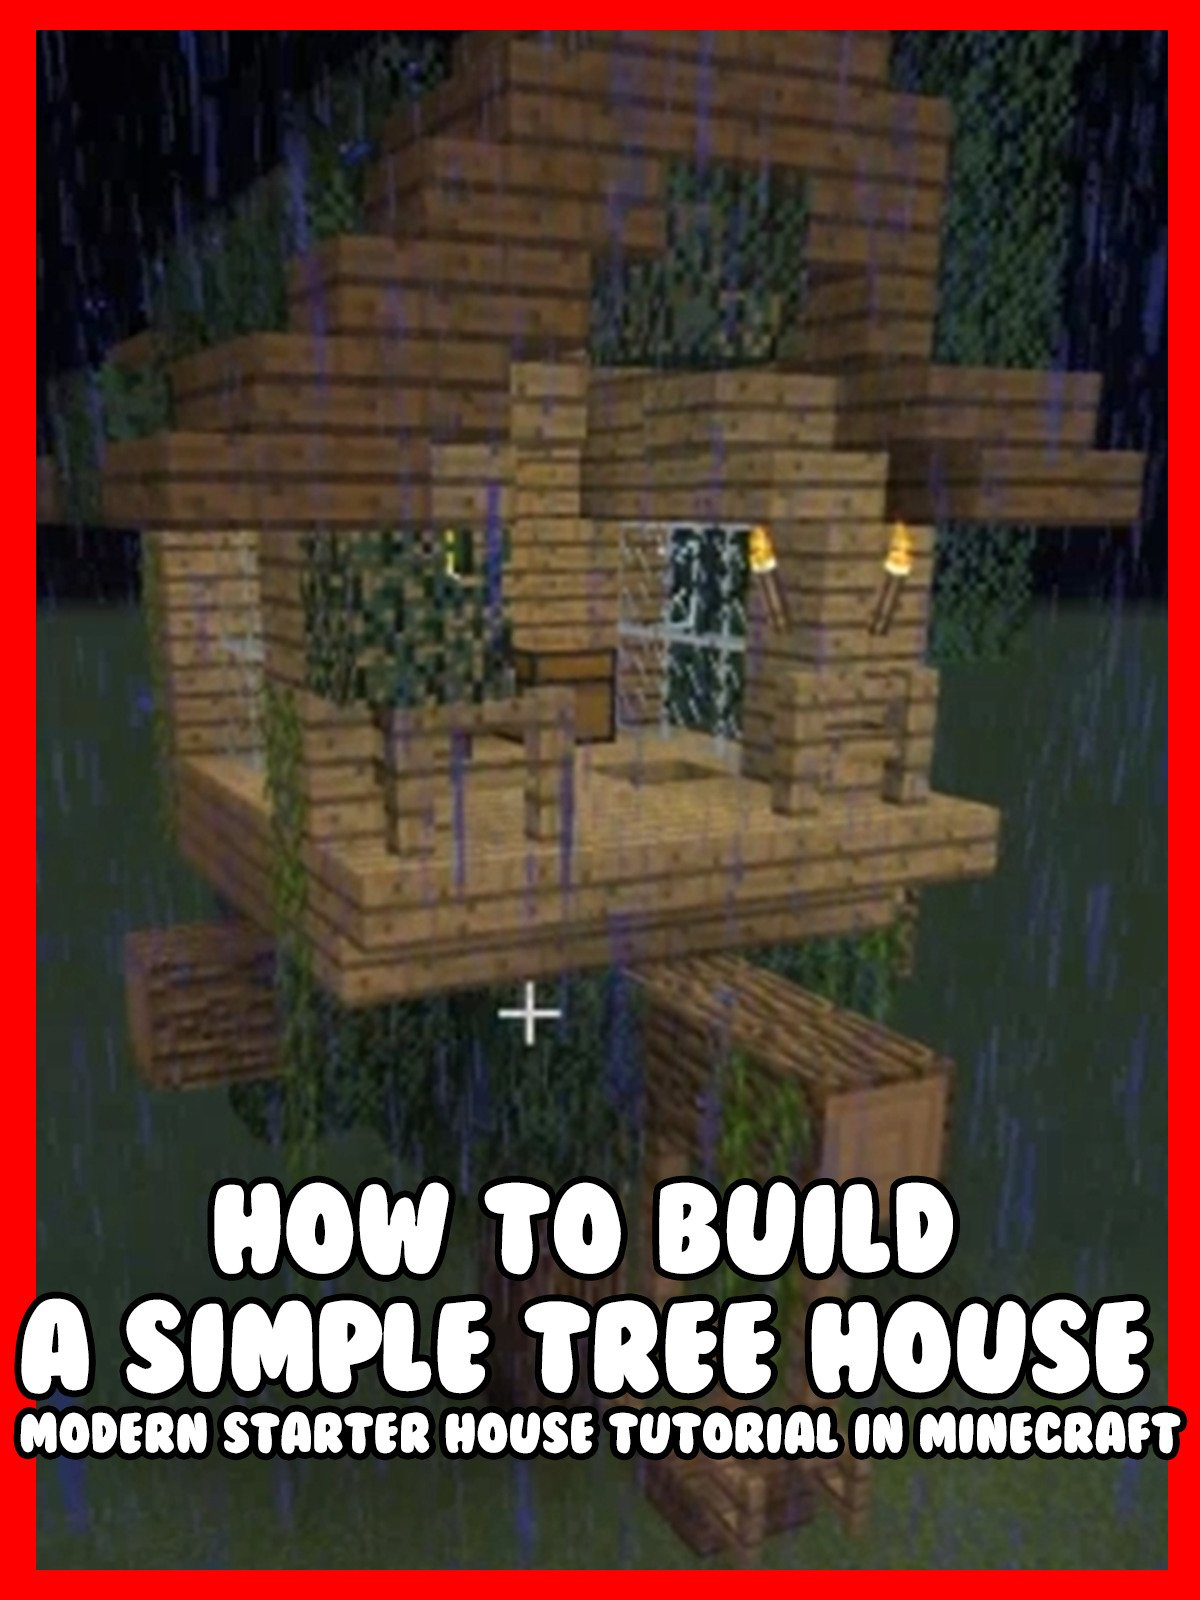 Clip: How to Build a Simple Tree House